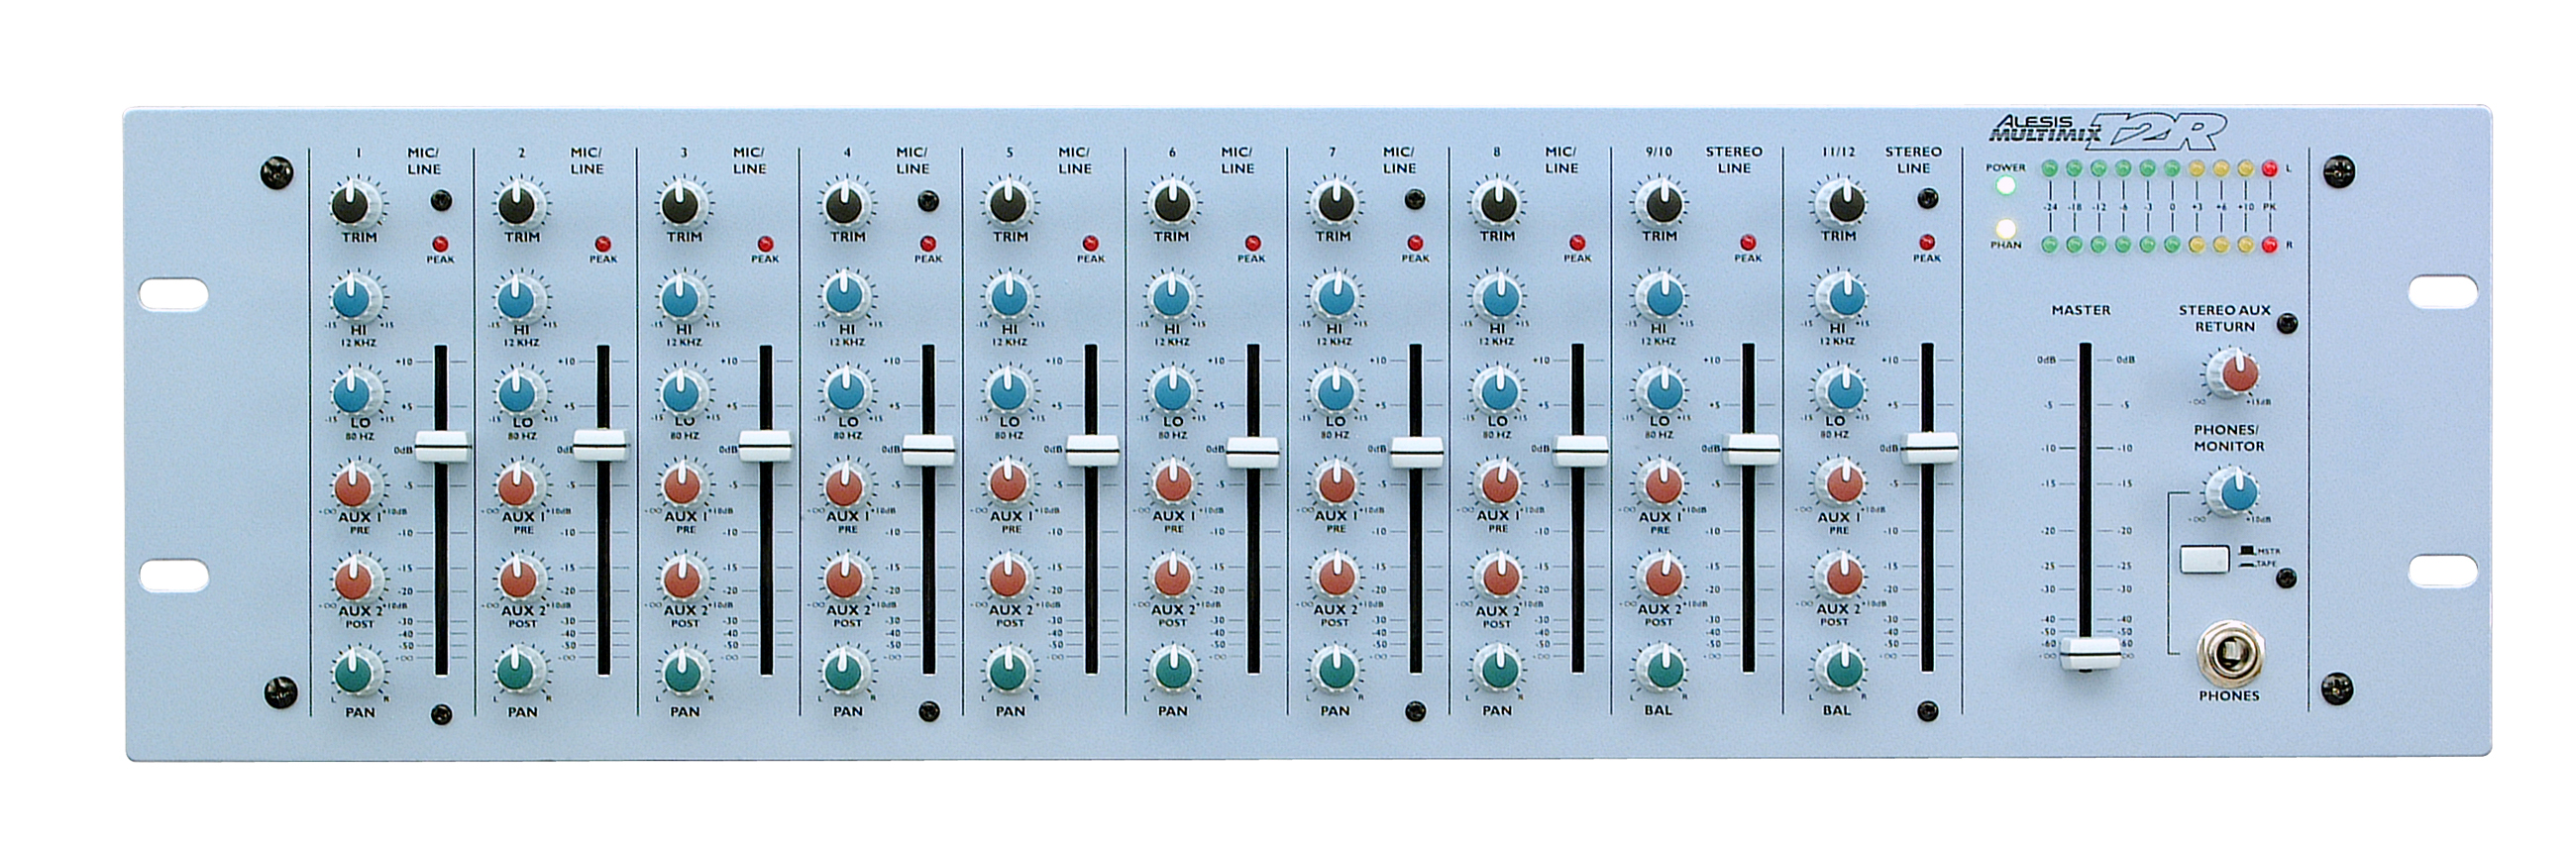 zone back view audio rack mixer ld mount cfd idjnow systems